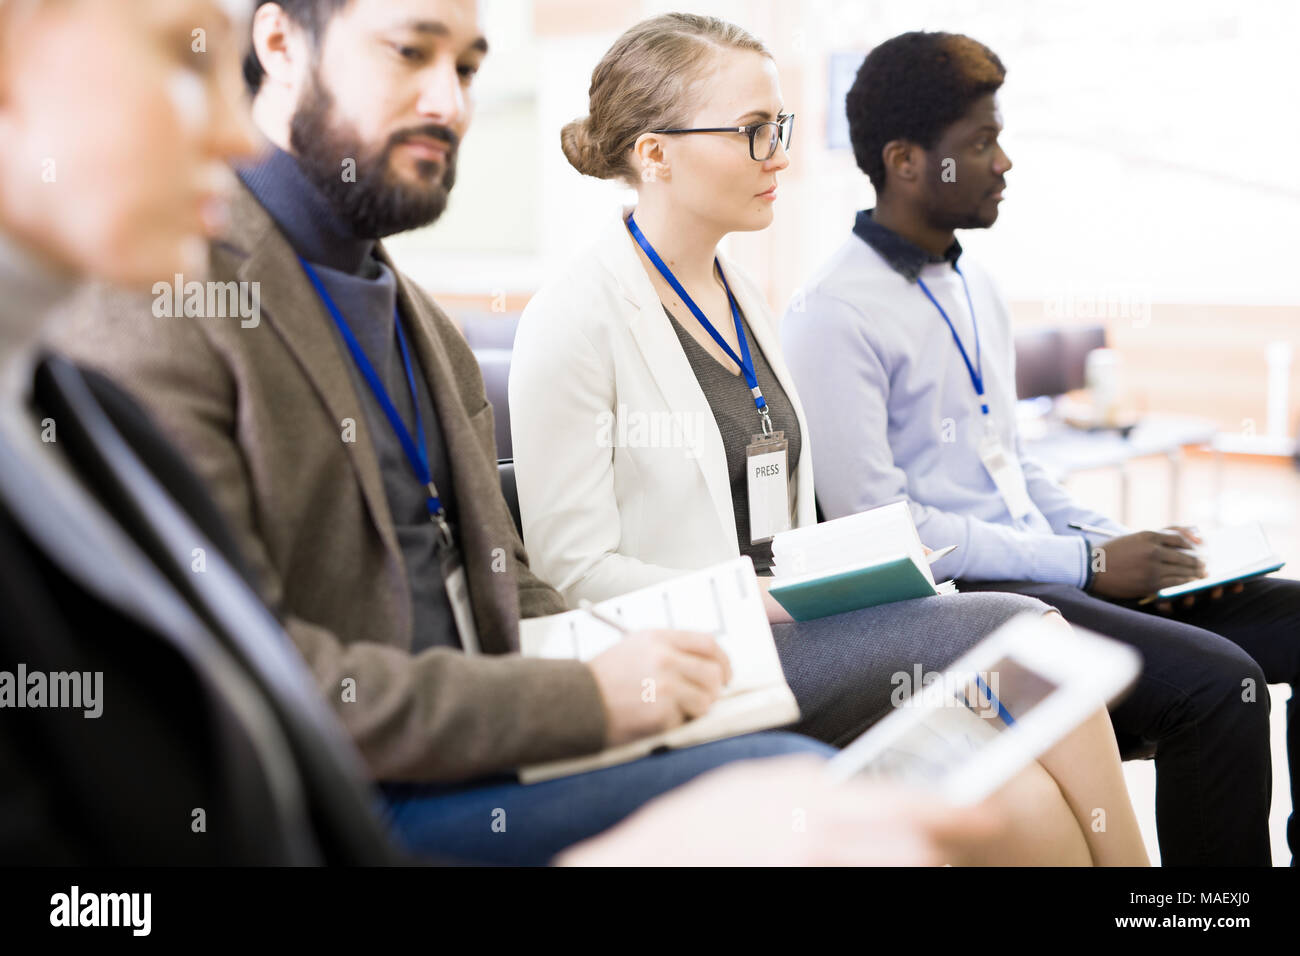 Highly Professional Journalists at Press Conference - Stock Image